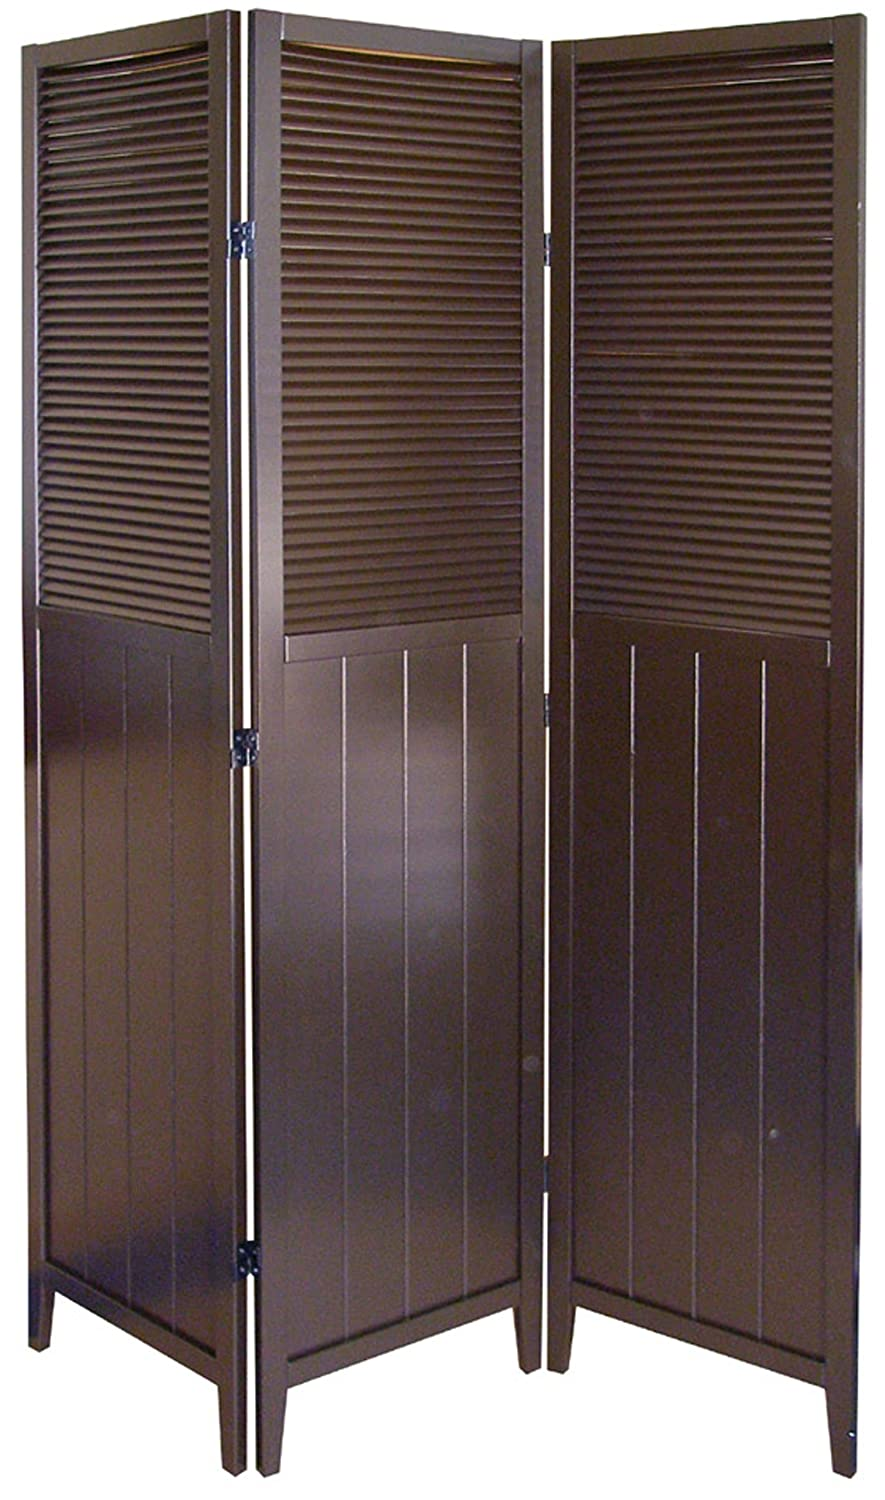 Amazoncom Shutter Door 3 Panel Room Divider Kitchen Dining